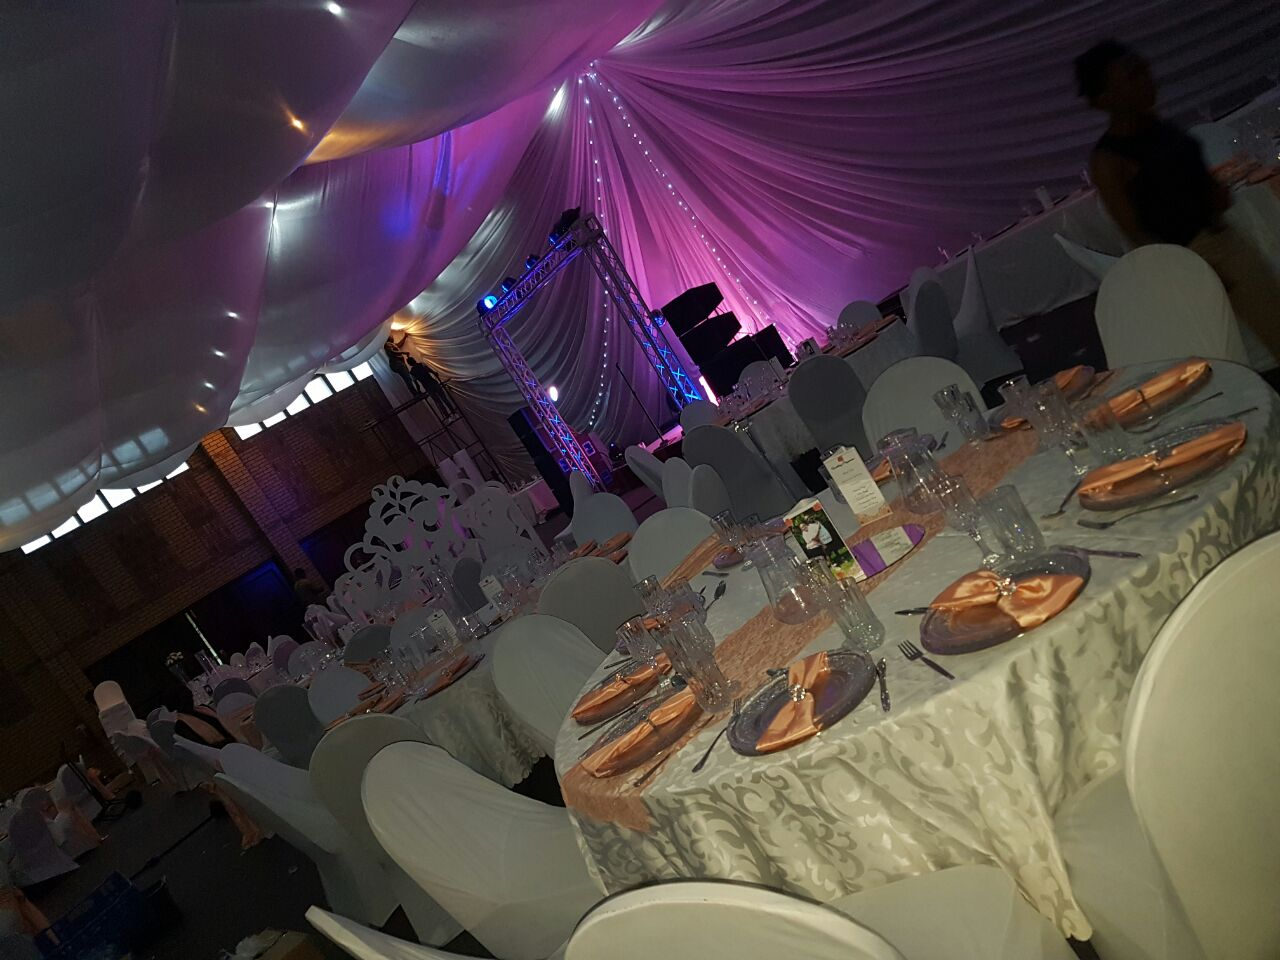 DECORATION FOR EVENTS,WEDDING,FUNCTION,CATERING,CONFERENCES,BABY SHOWER DECOR CALL 0740880140